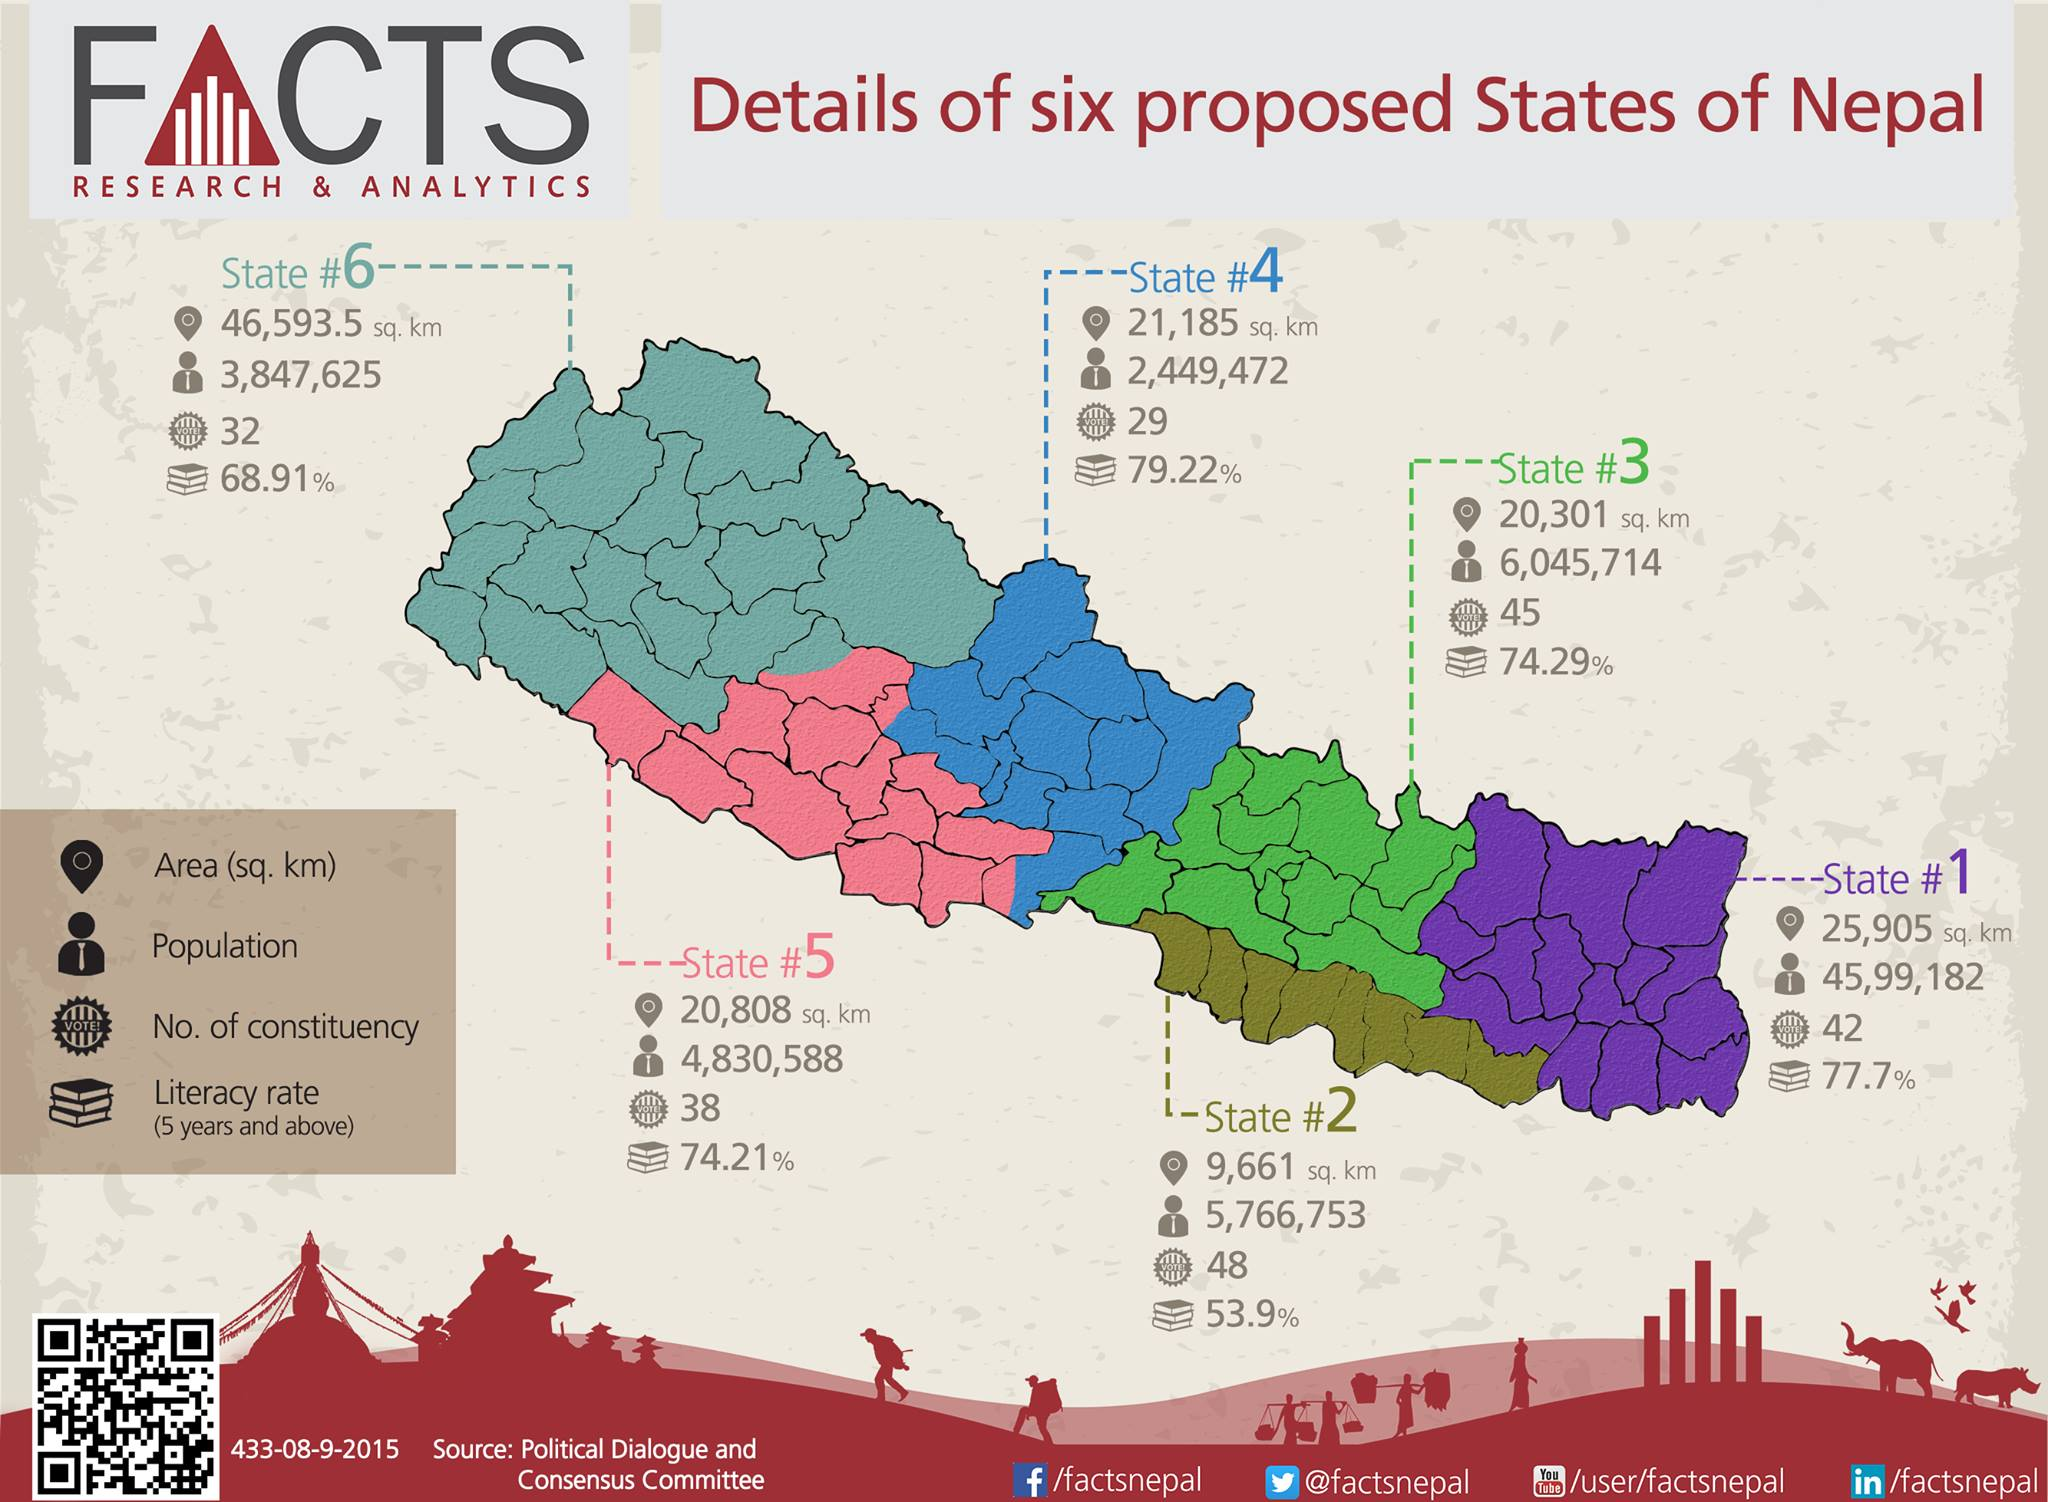 Details of six proposed States of Nepal